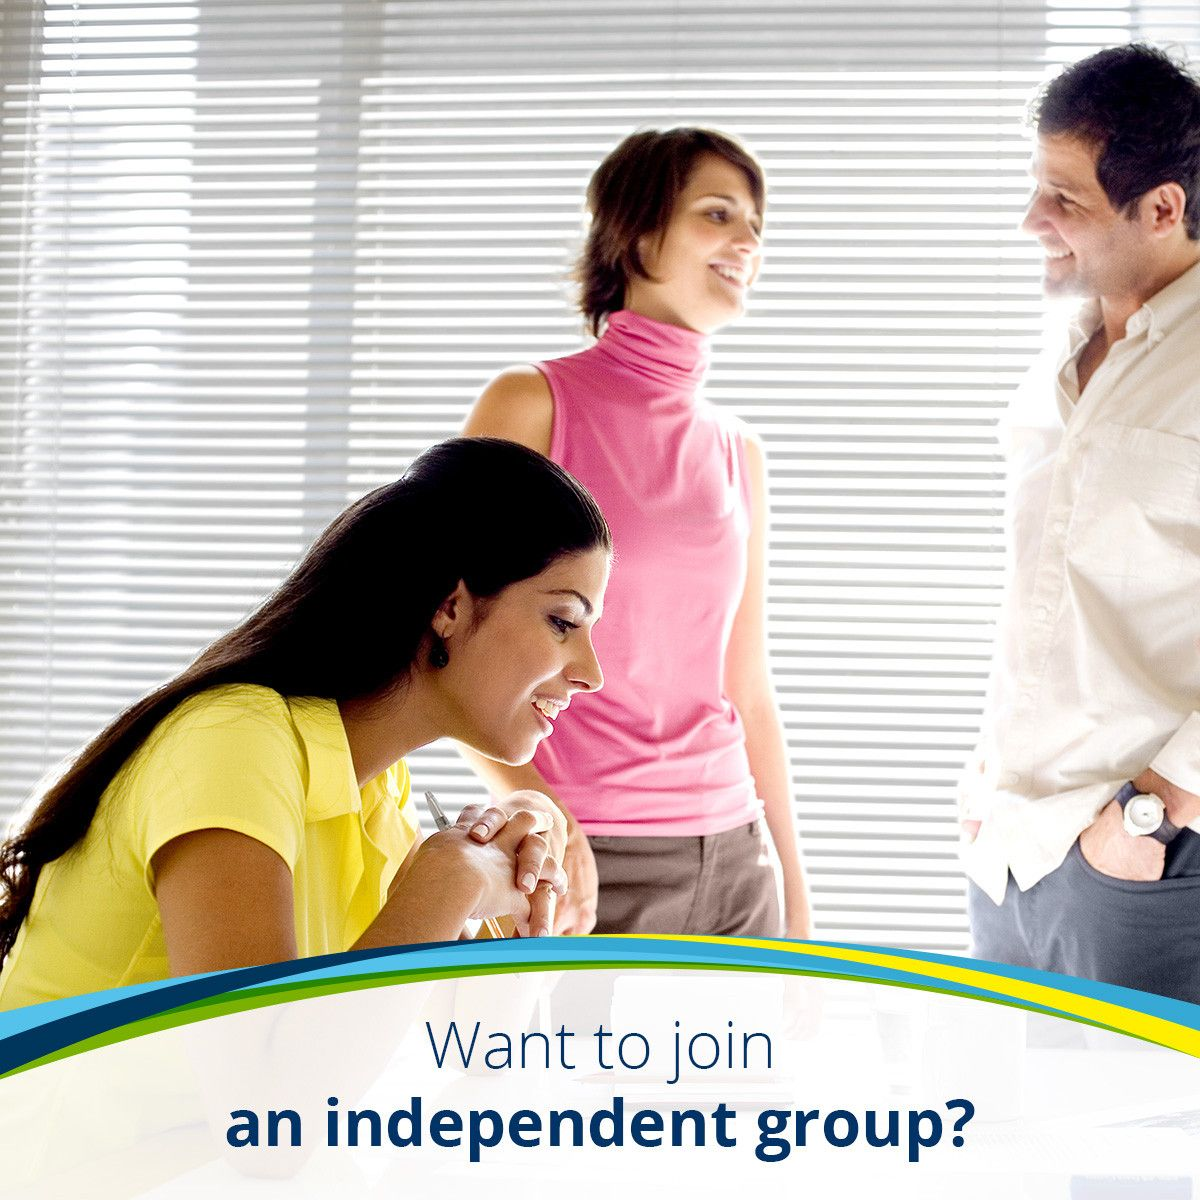 Want to join an independent group?